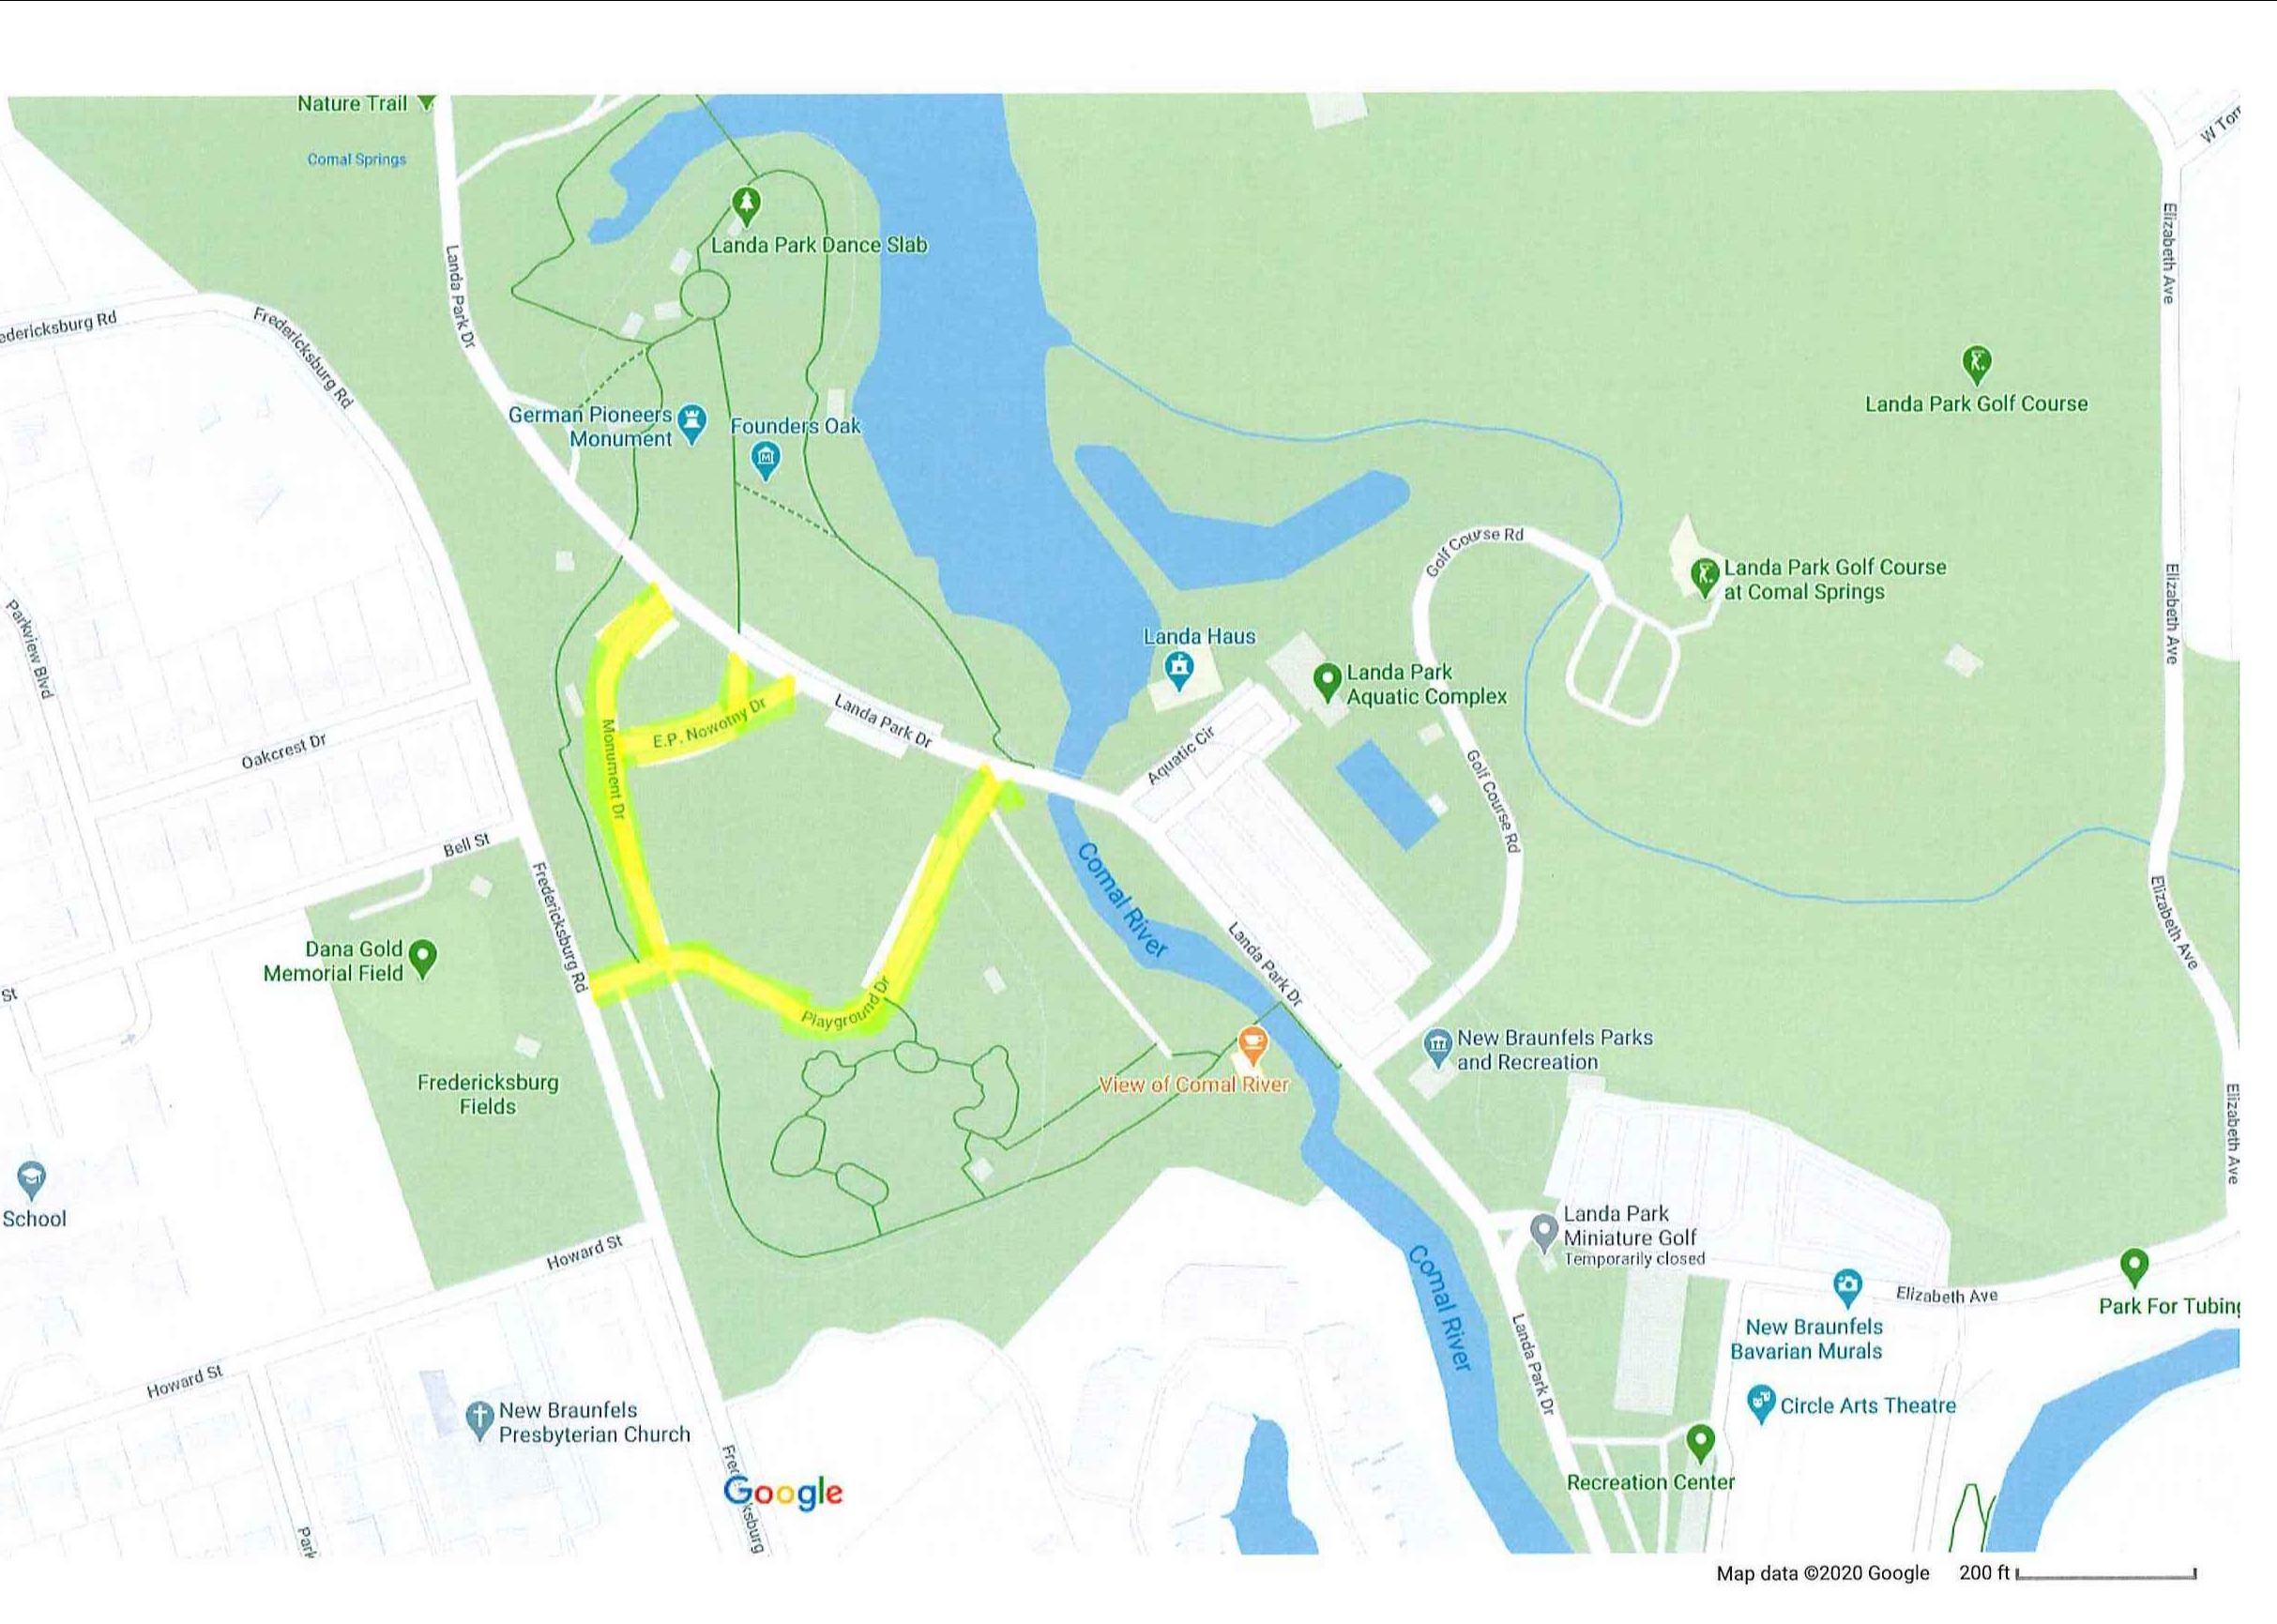 04-21-20 Landa Park Mill and Overlay Map